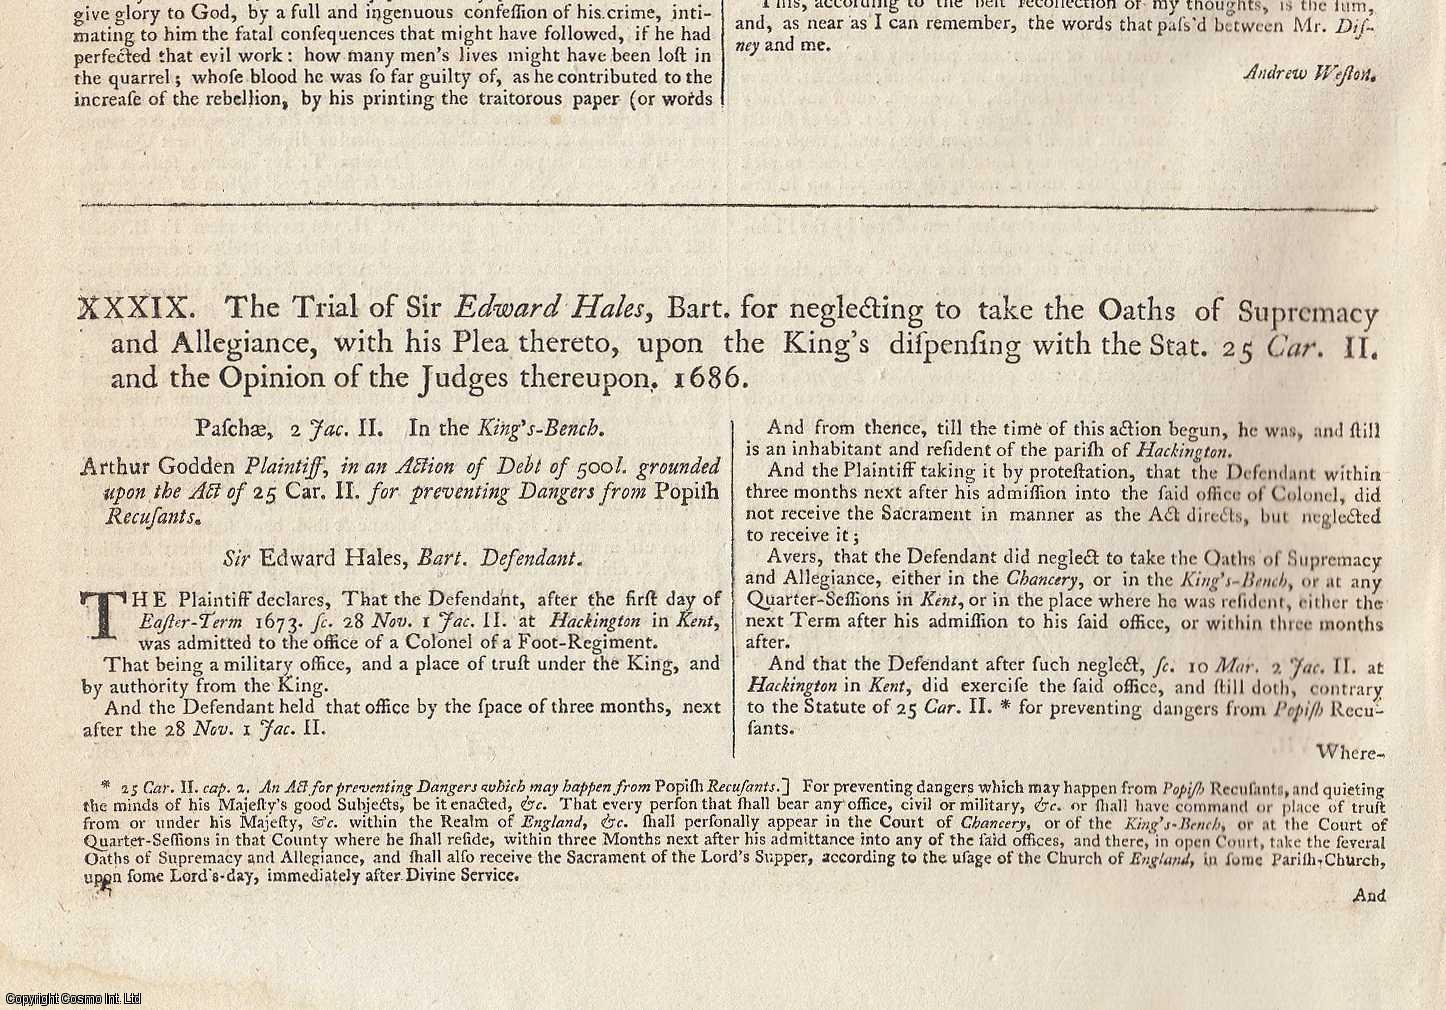 [TRIAL]. - GLORIOUS REVOLUTION.The Trial of Sir Edward Hales, Bart. For neglecting to take the Oaths of Supremacy and Allegiance, with his Plea thereto, upon the King's dispensing with the Stat. 25 Car. II and the Opinion of the Judges thereupon, 1686. An original article from the Collected State Trials::Large Folio, 1778.